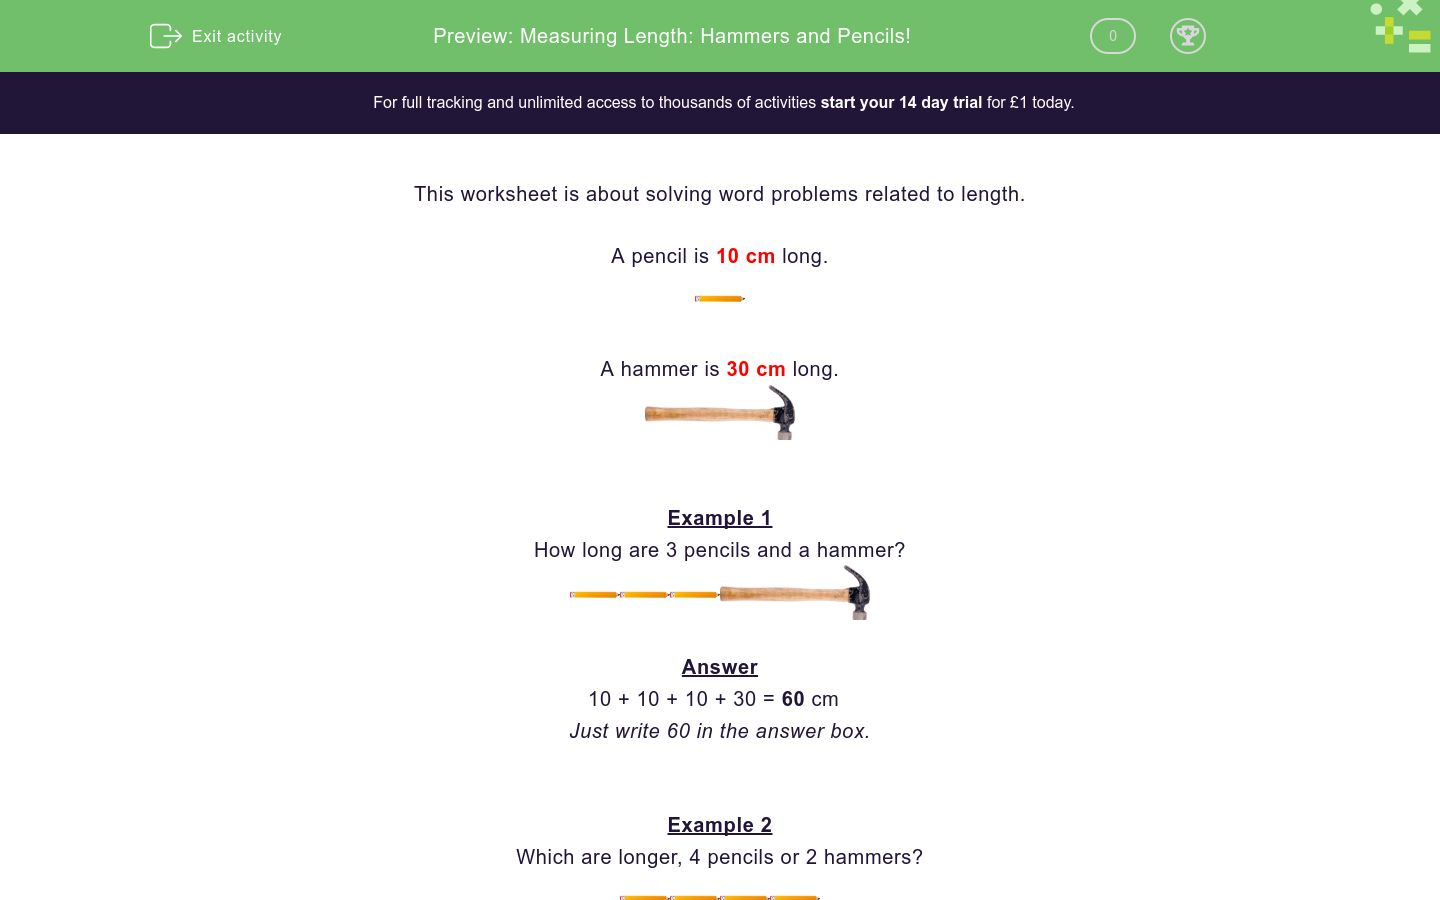 'Measuring Length: Hammers and Pencils!' worksheet